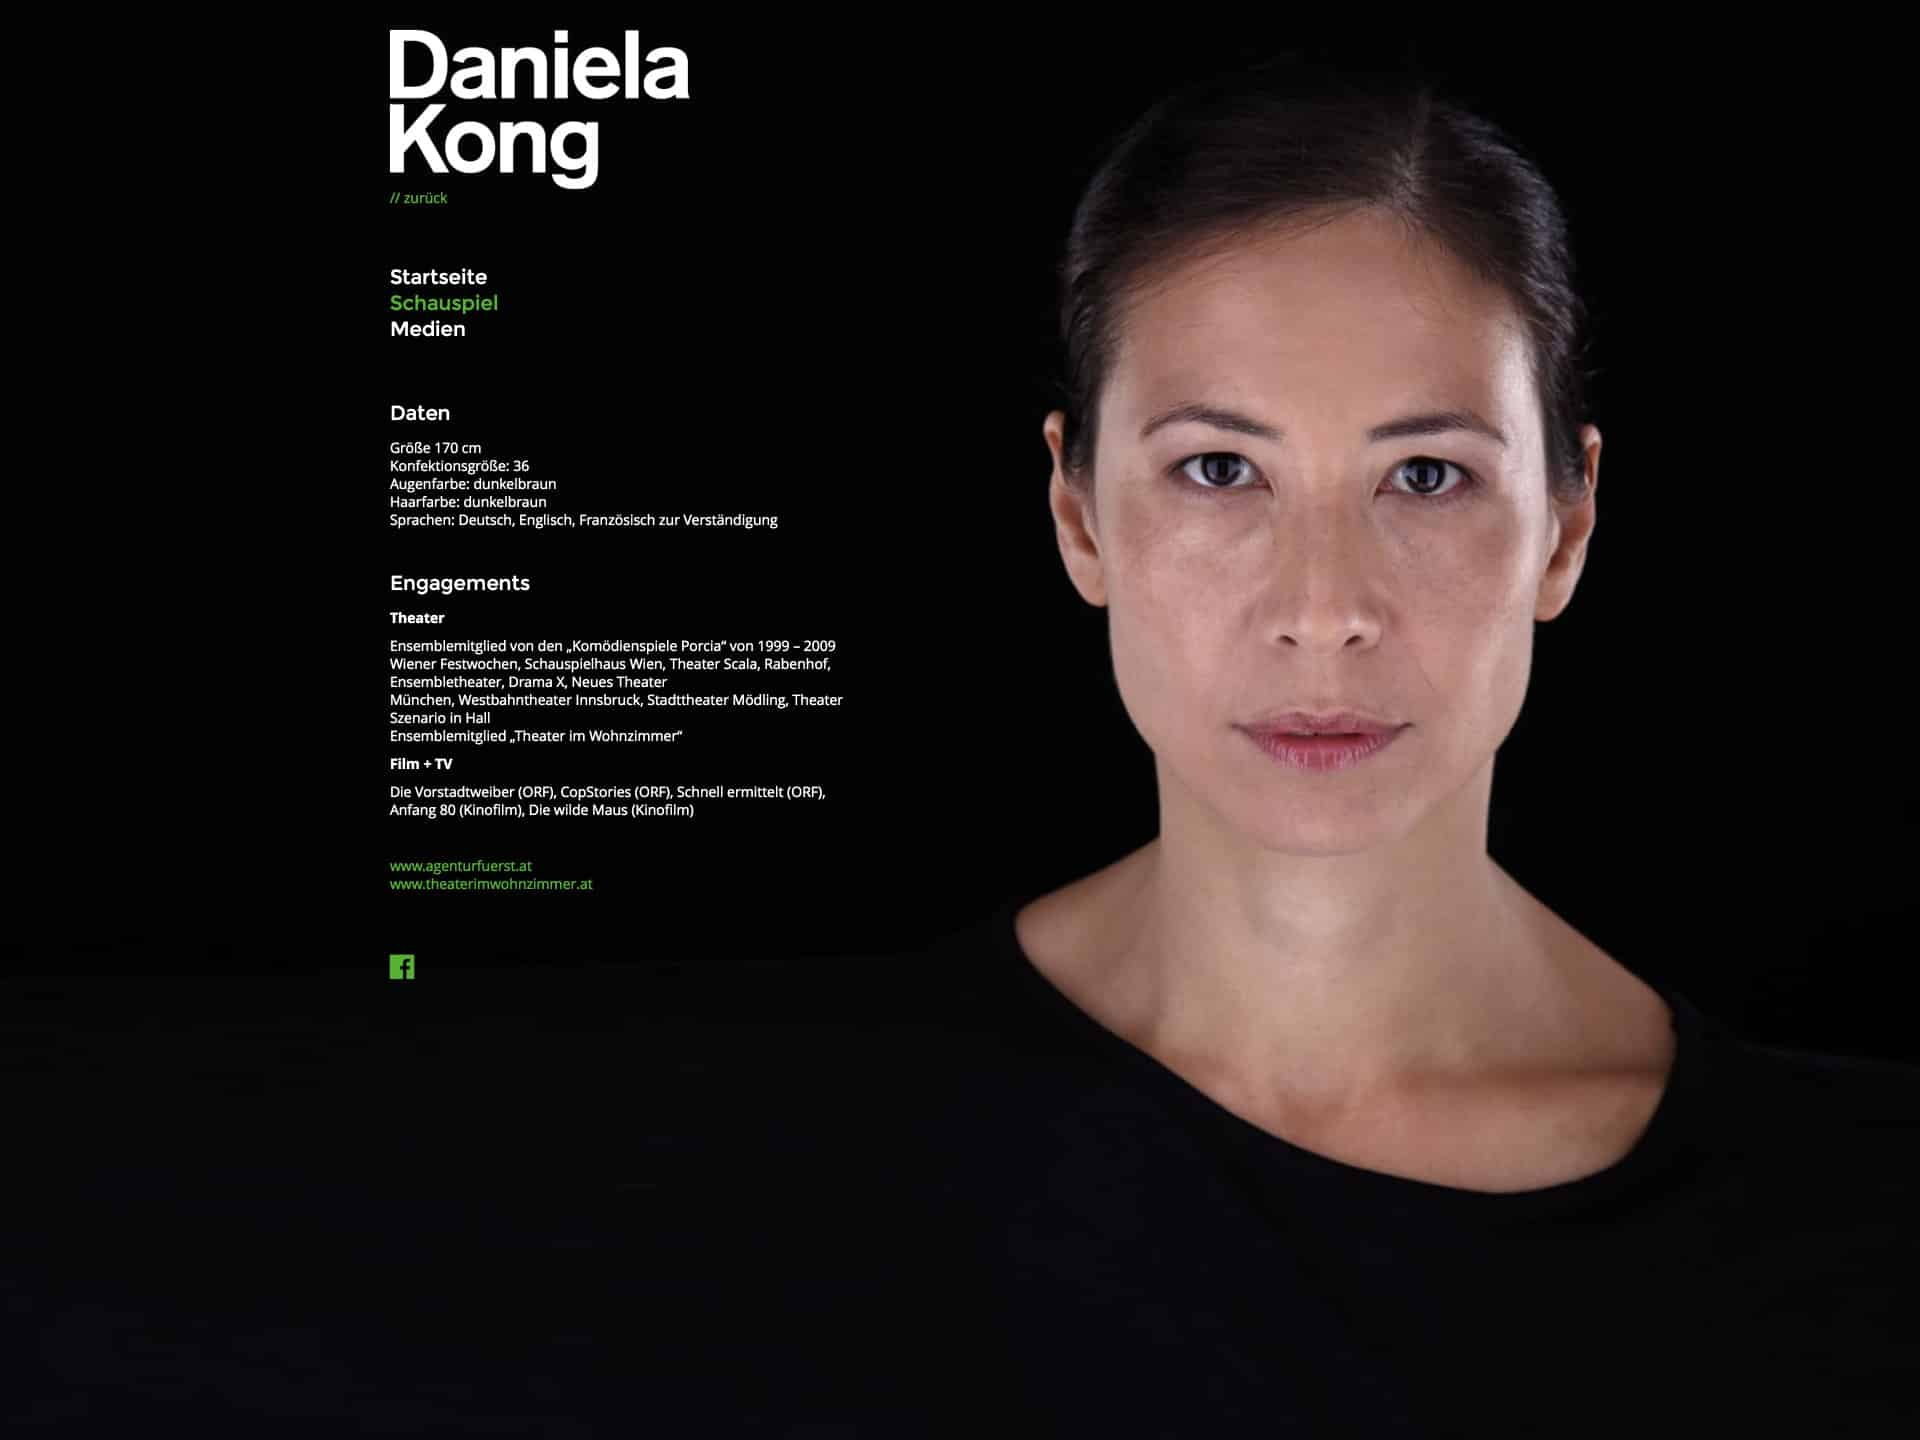 Daniela Kong Website